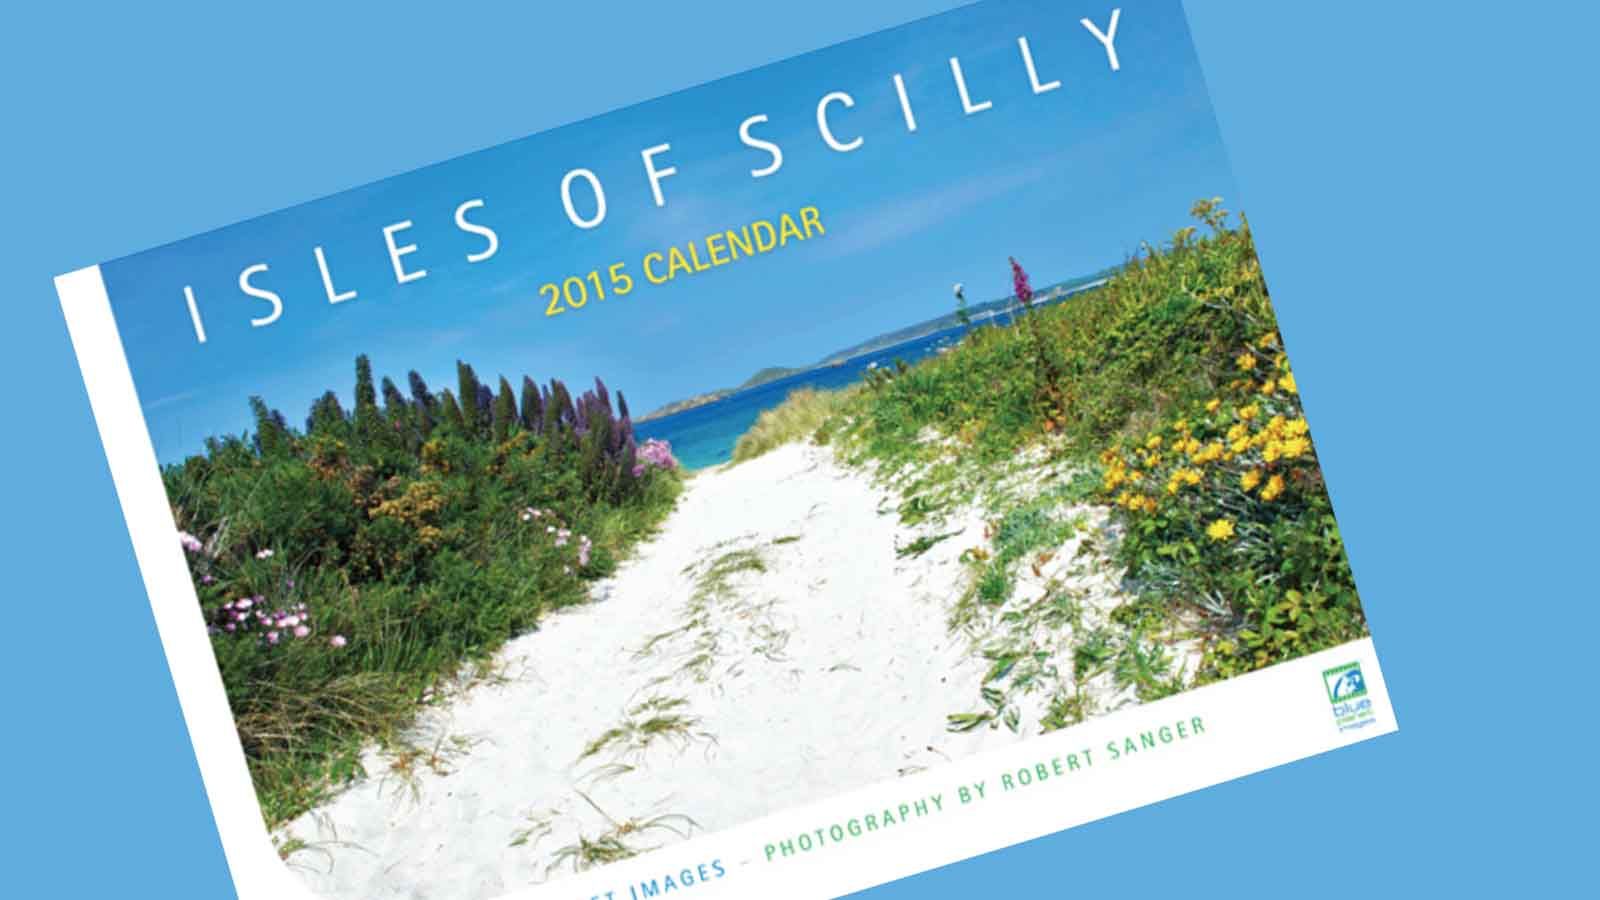 The 2015 Isles of Scilly Calendar